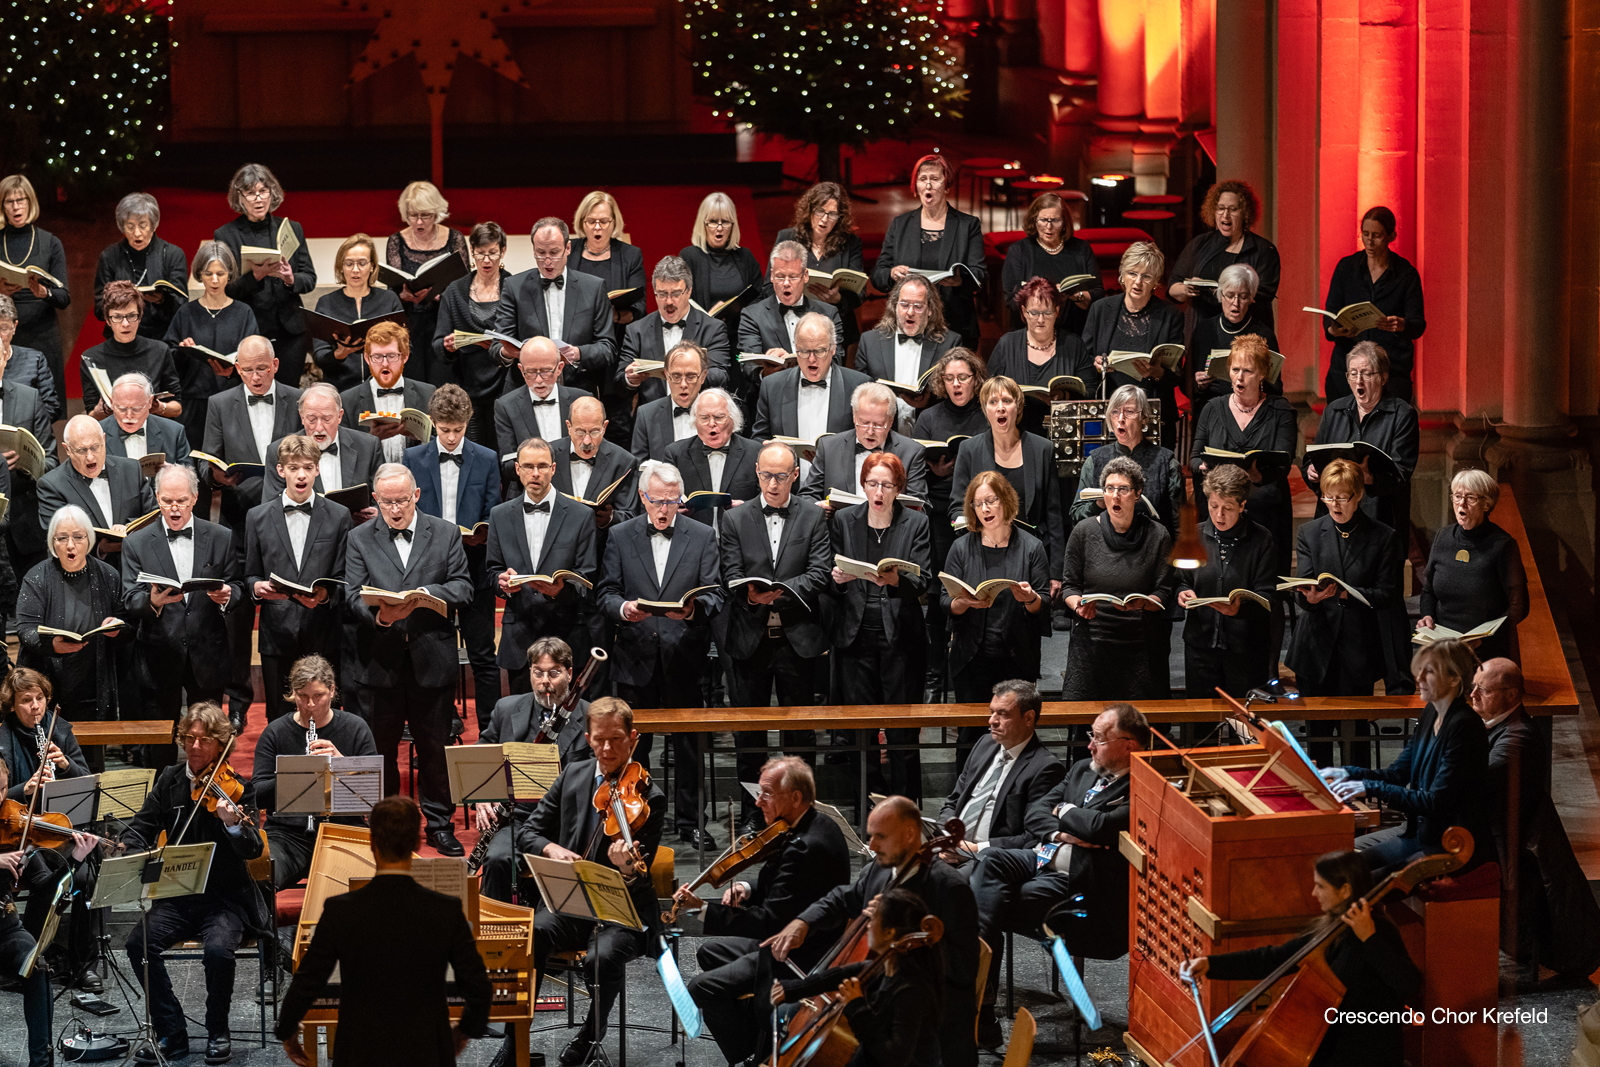 15_20191222_Crescendo_Chor_Krefeld_Messiah_019